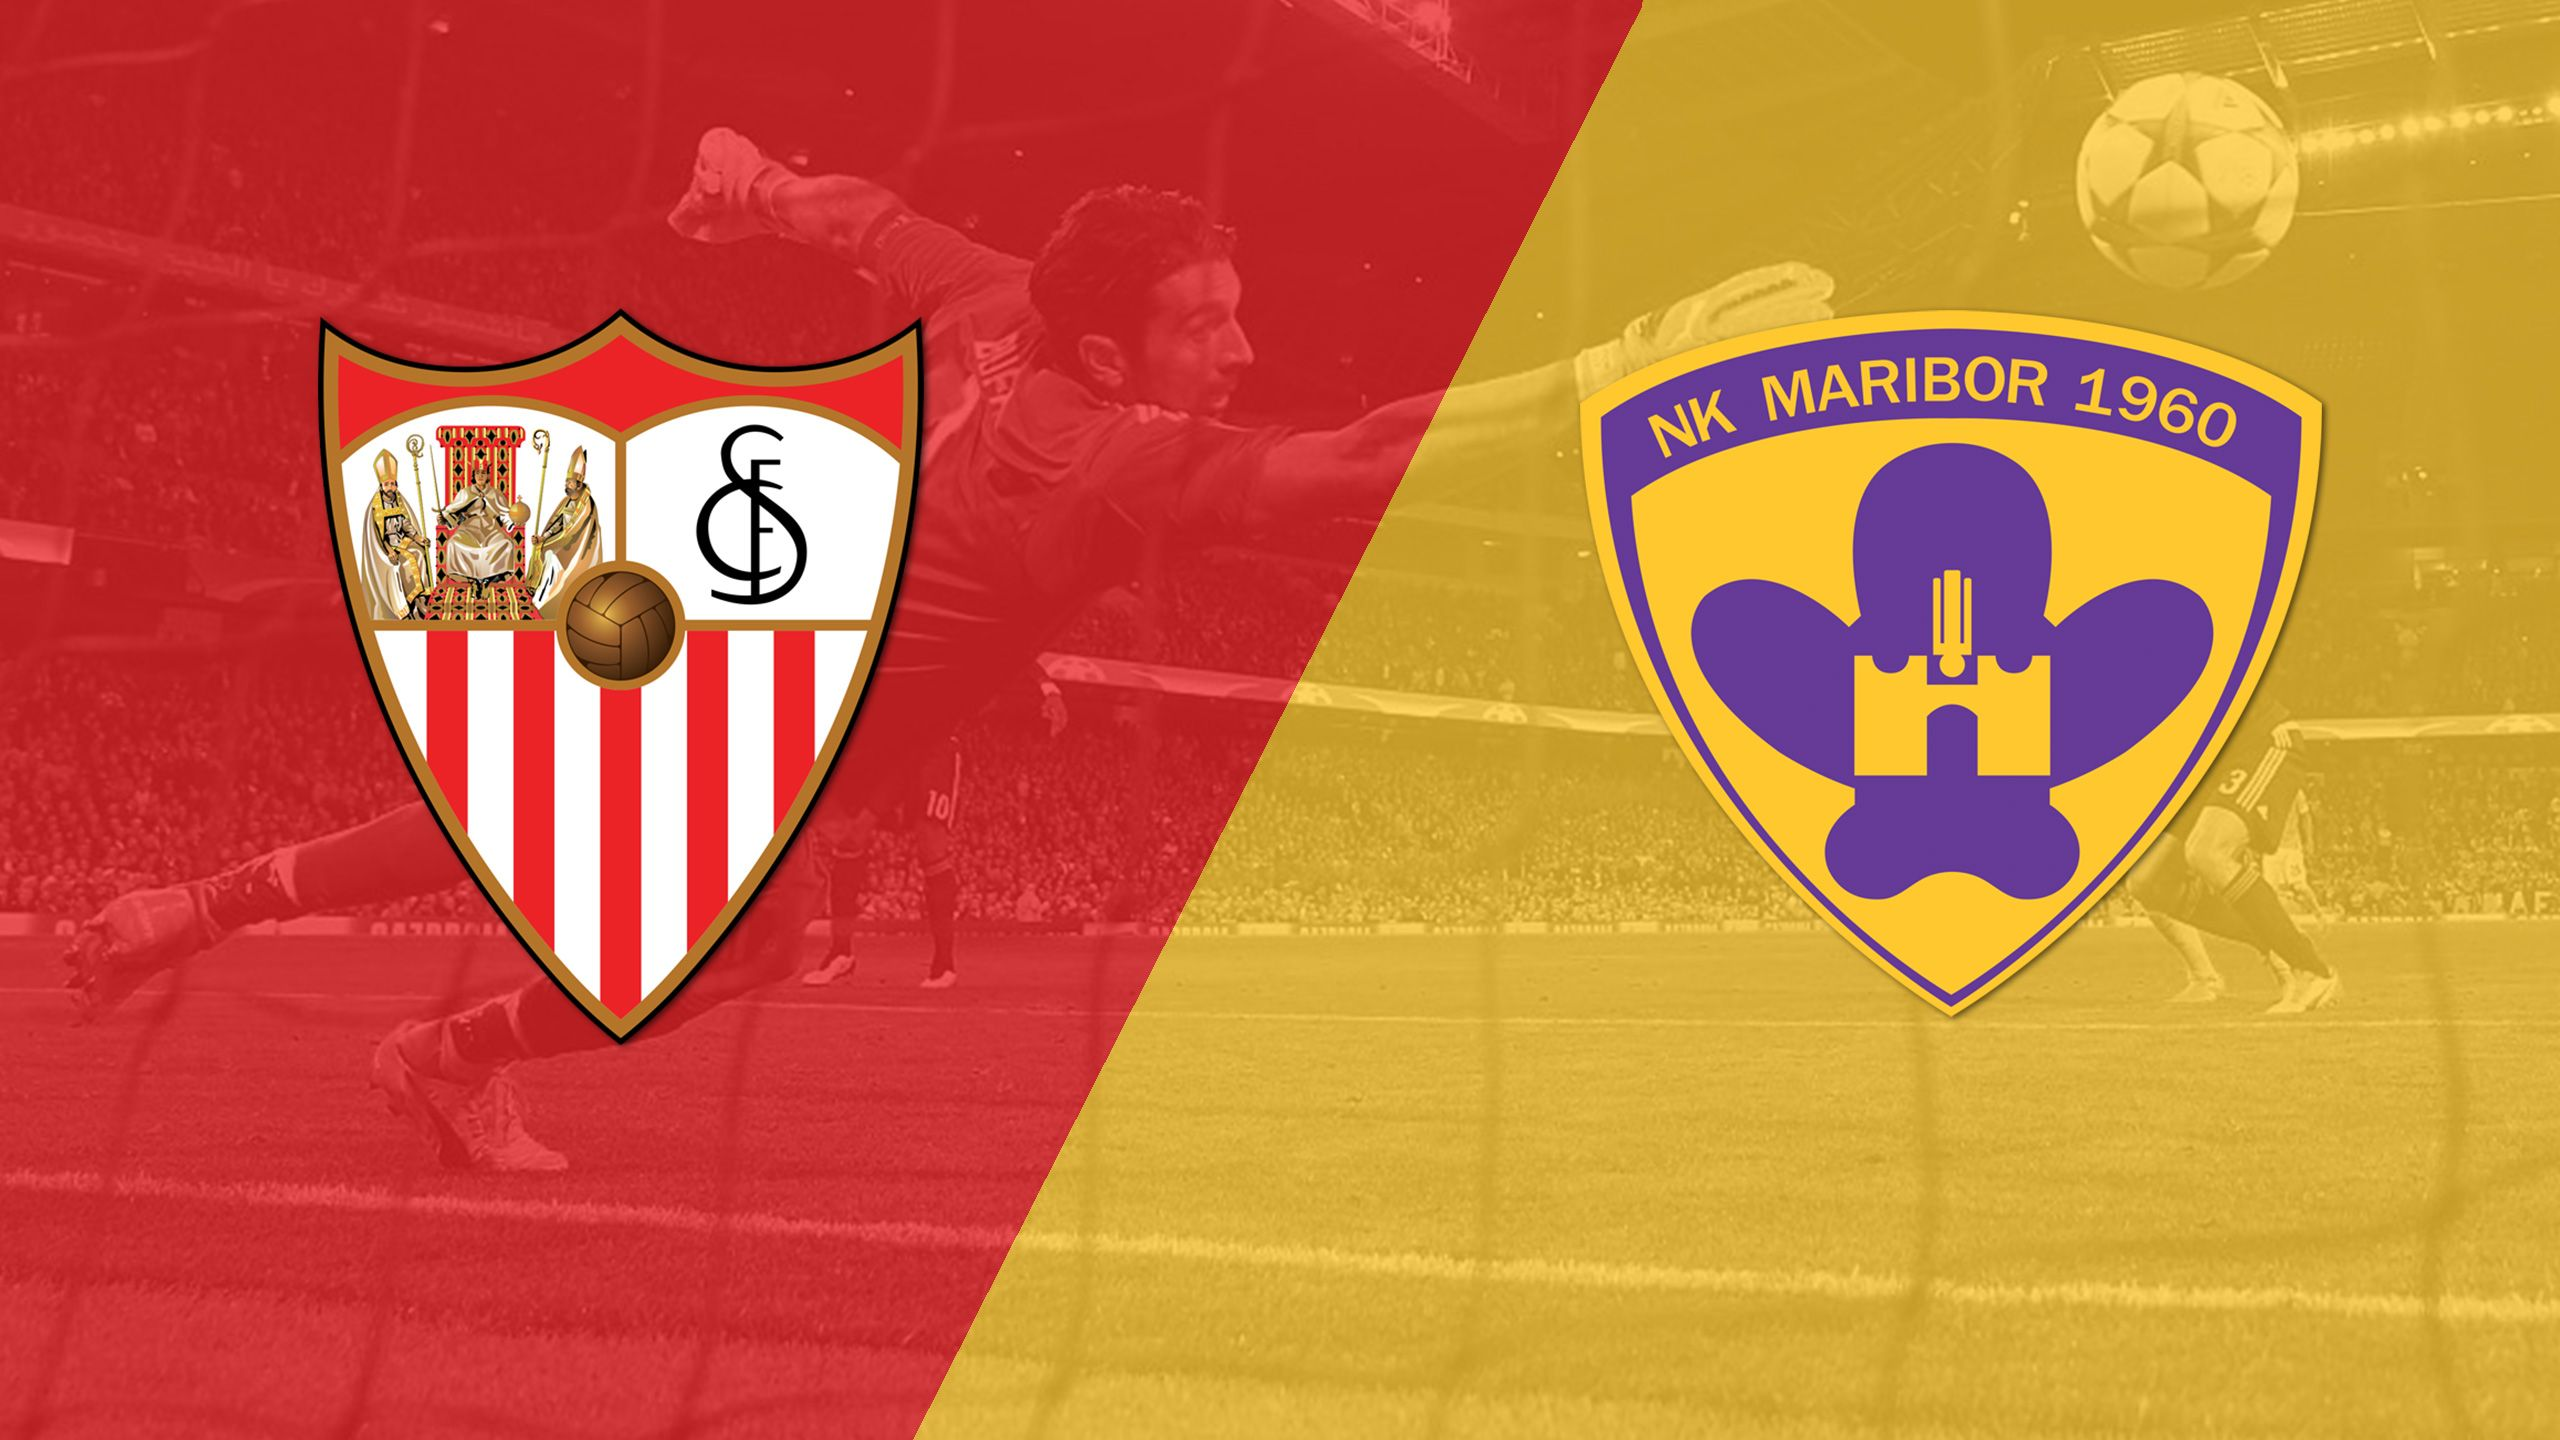 In Spanish - Sevilla vs. NK Maribor (Group Stage) (UEFA Champions League)